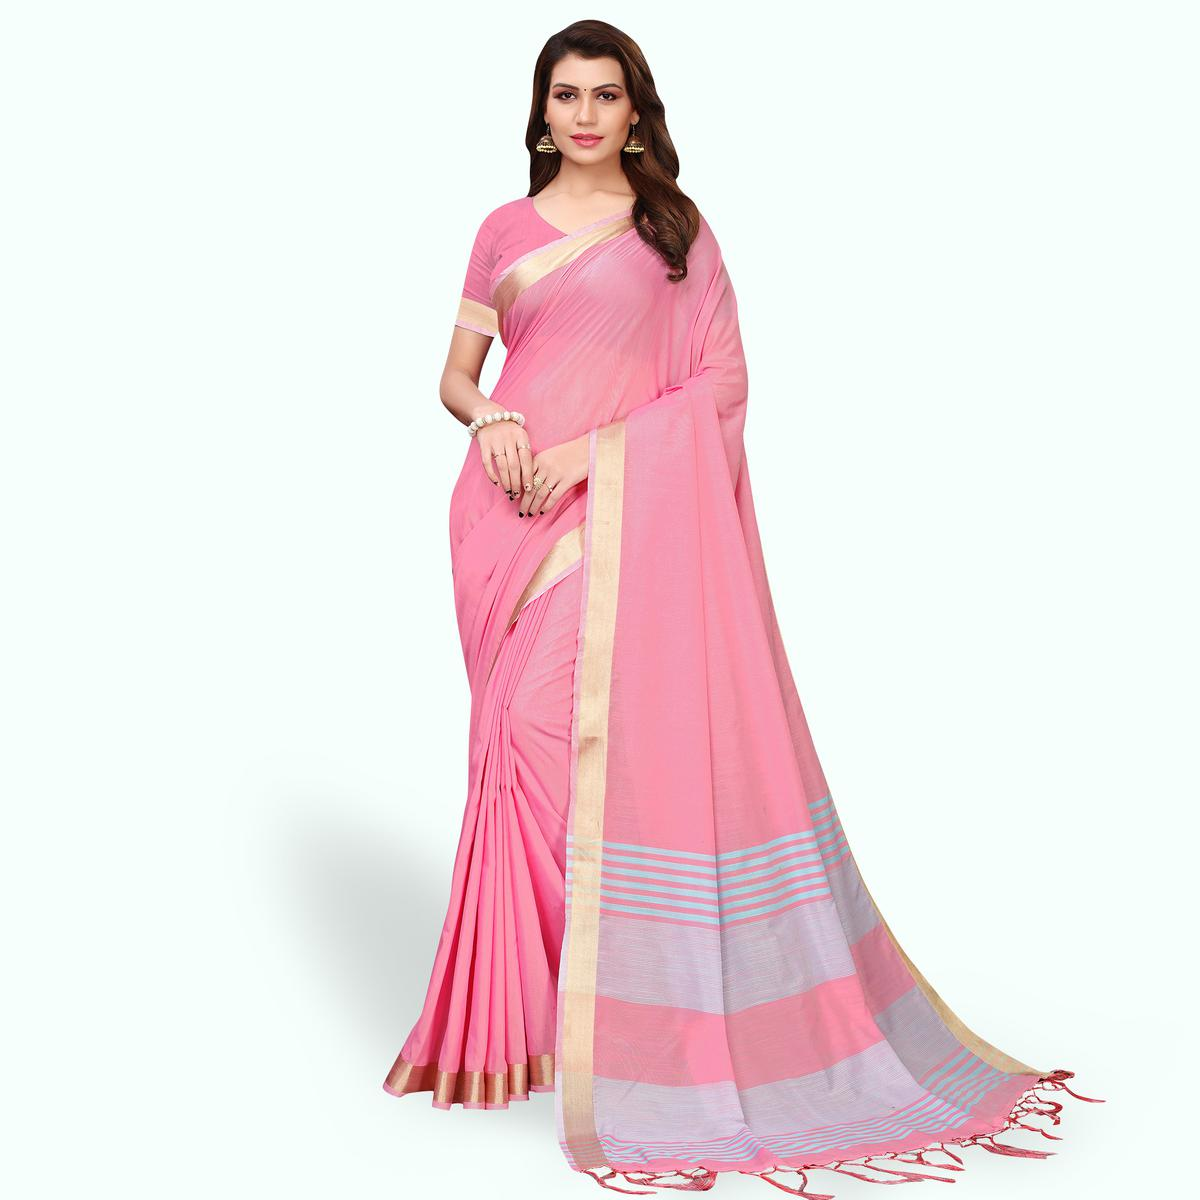 Majesty Pink Colored Festive Wear Cotton Linen Saree